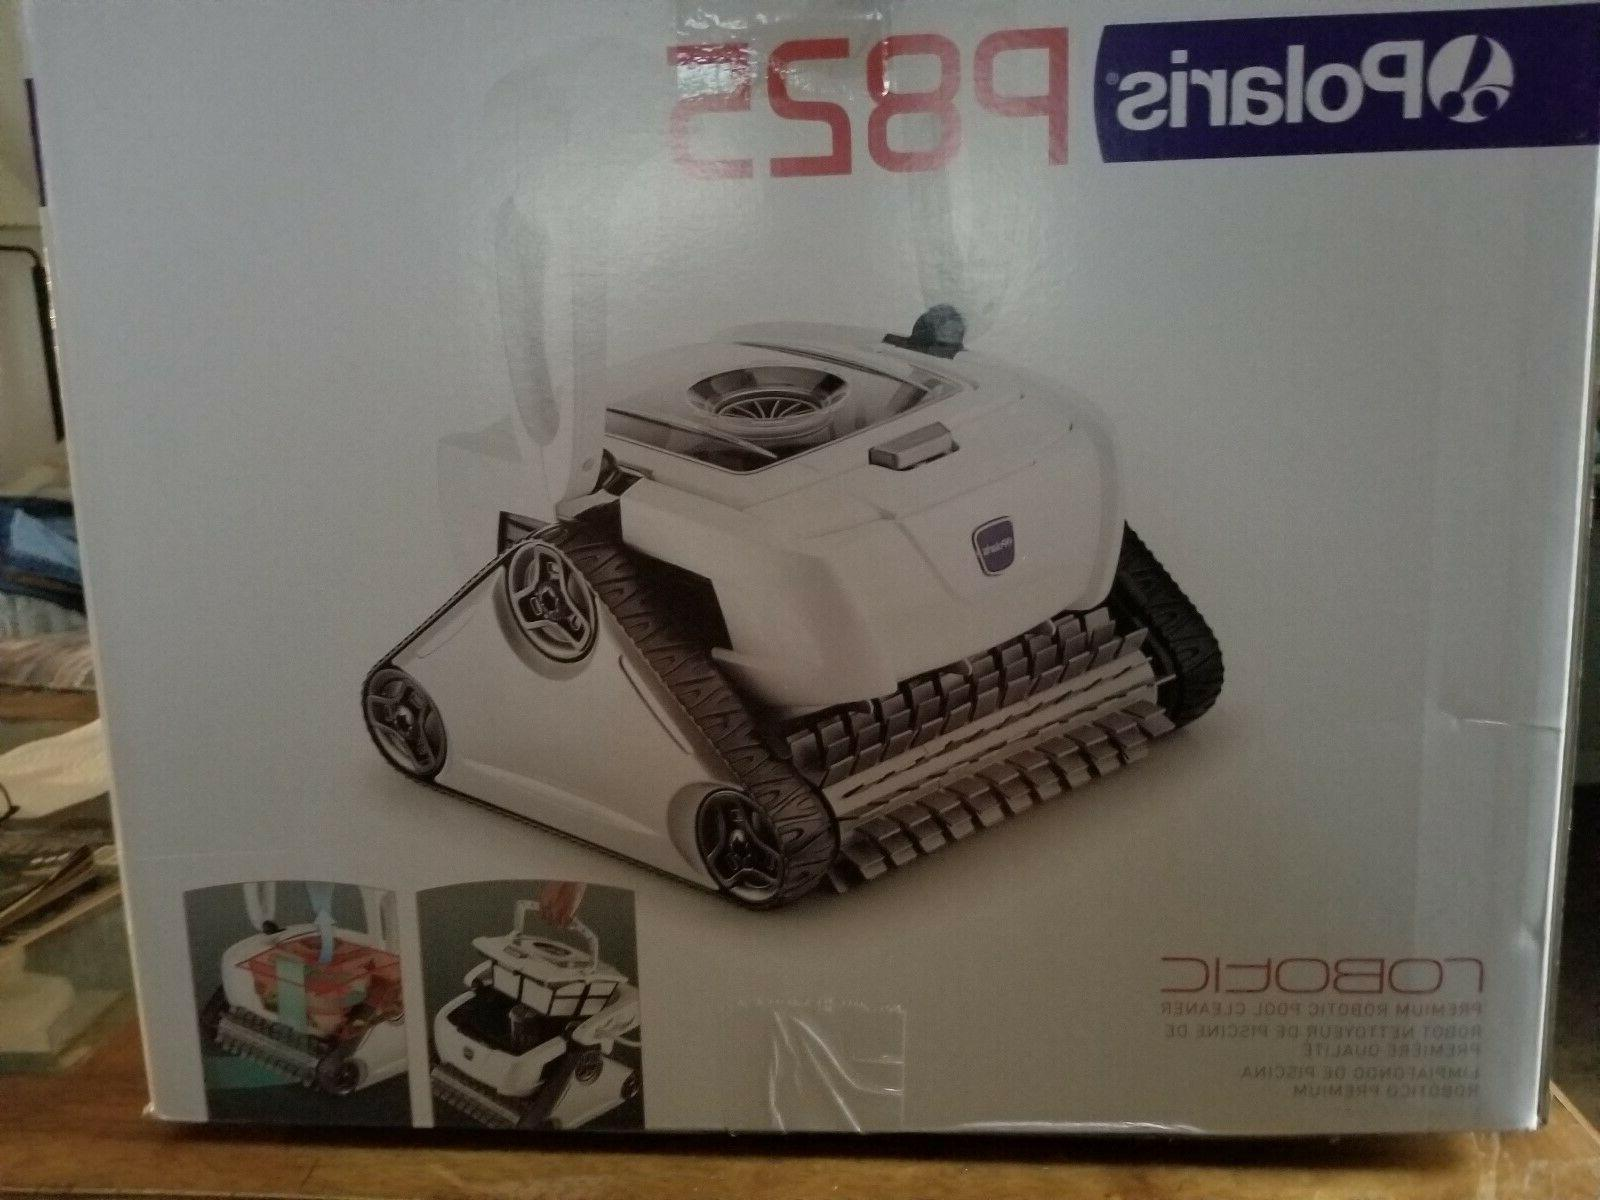 p825 robotic pool cleaner new sealed